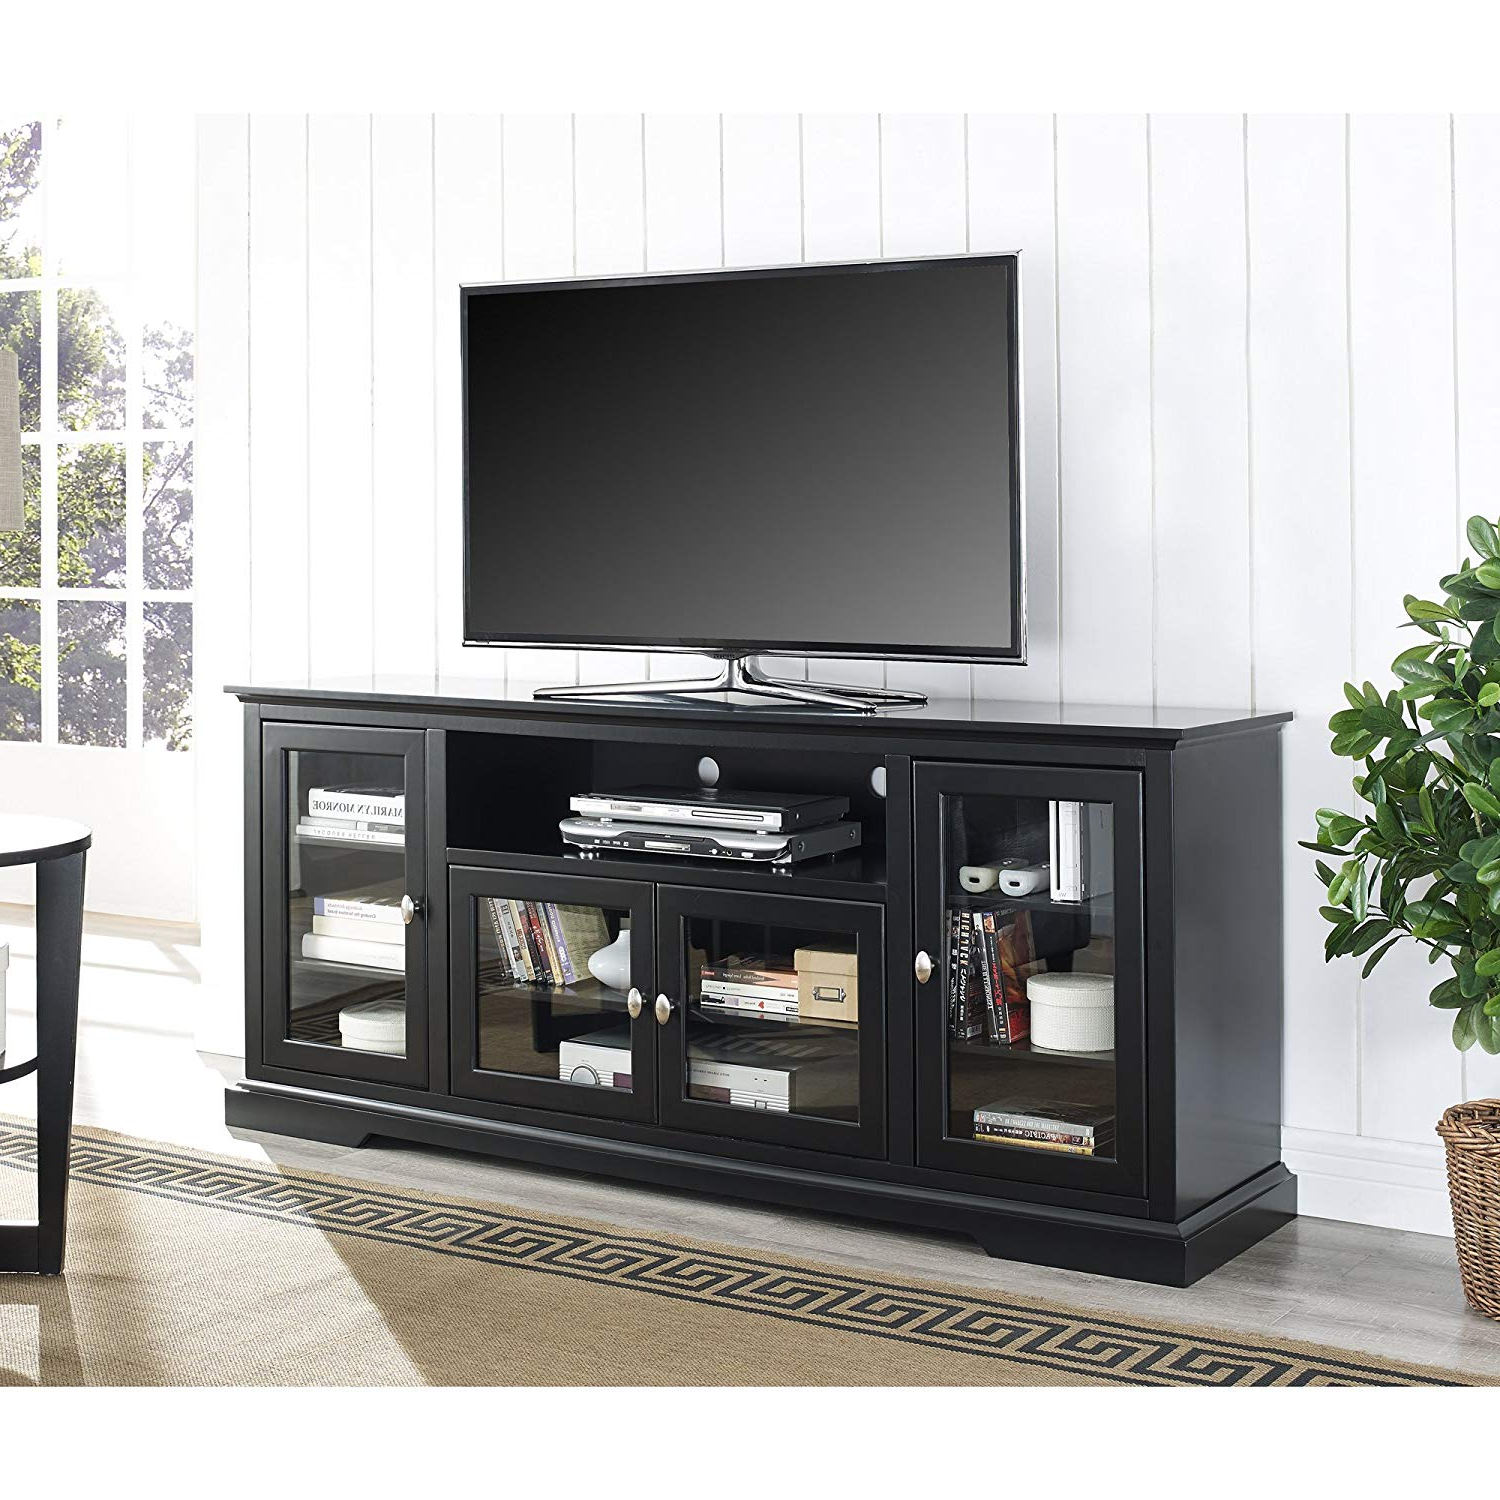 """Tv Stands For 70 Flat Screen With Regard To Popular Amazon: We Furniture 70"""" Highboy Style Wood Tv Stand Console (View 3 of 20)"""